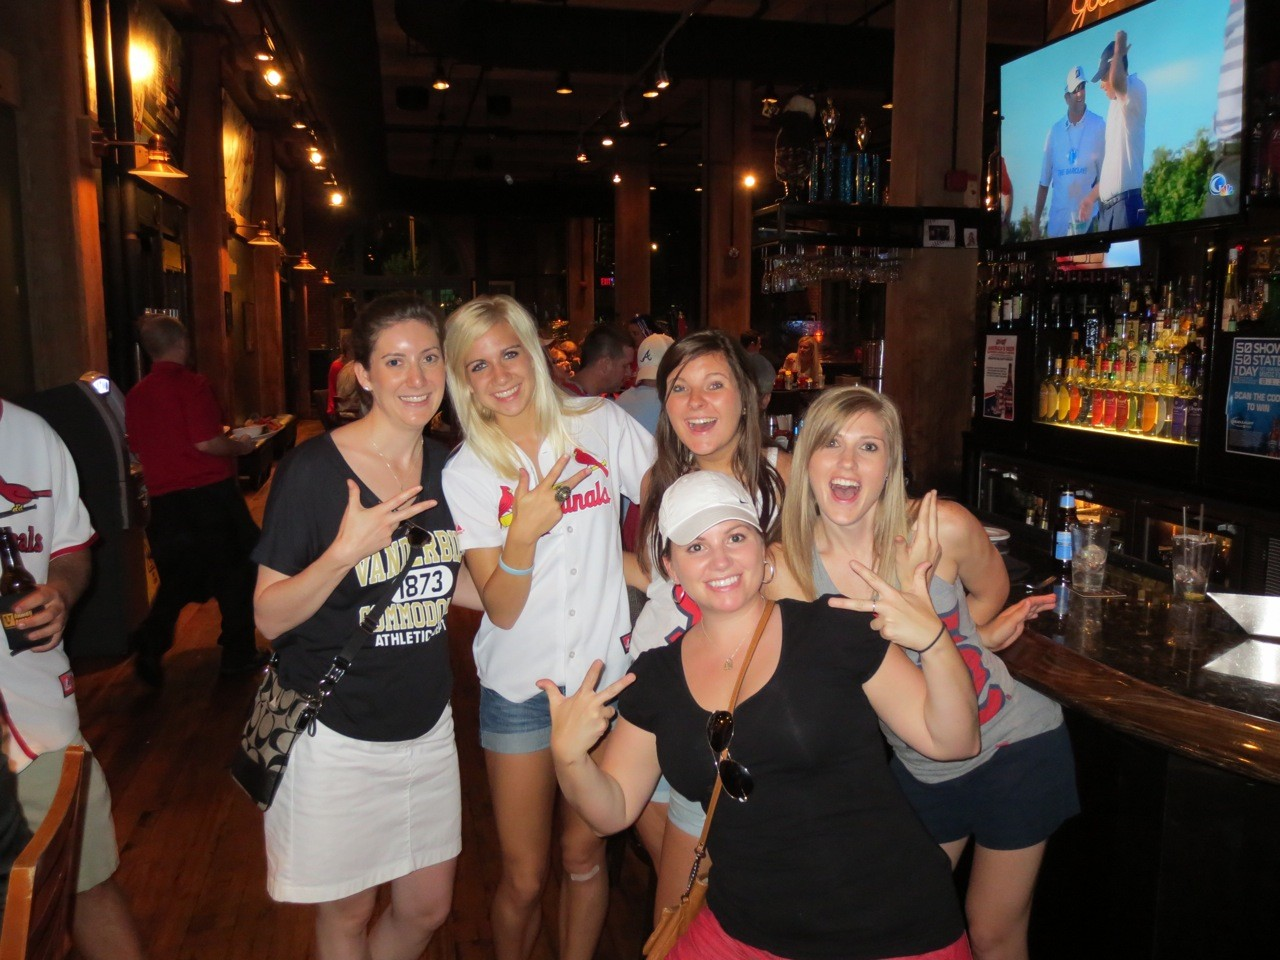 St. Louis Cardinals Game Watch Party